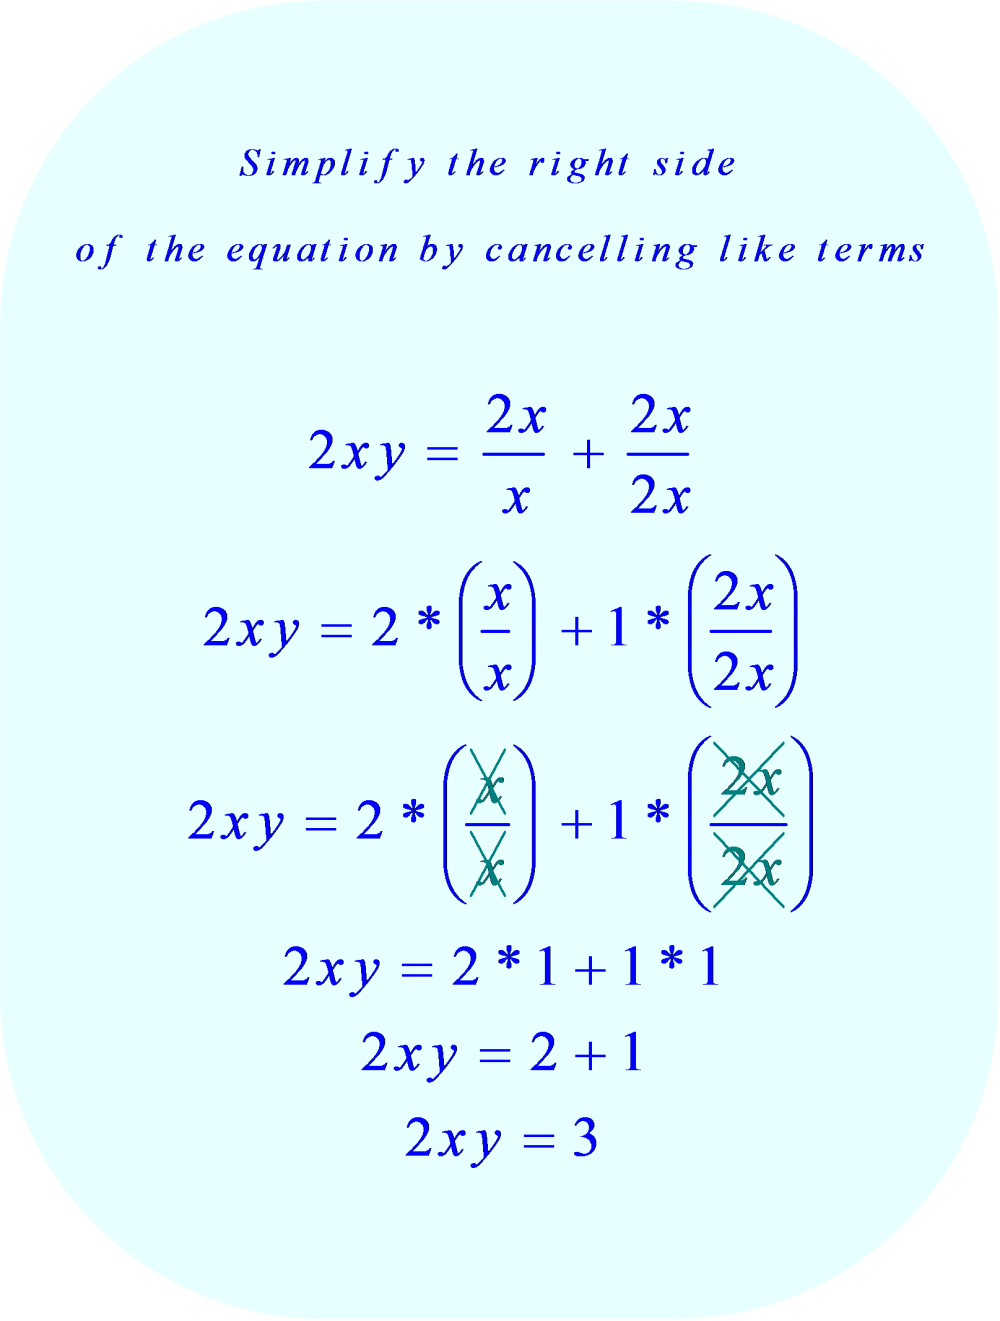 cancel the like terms in the numerator and denominator for each fraction